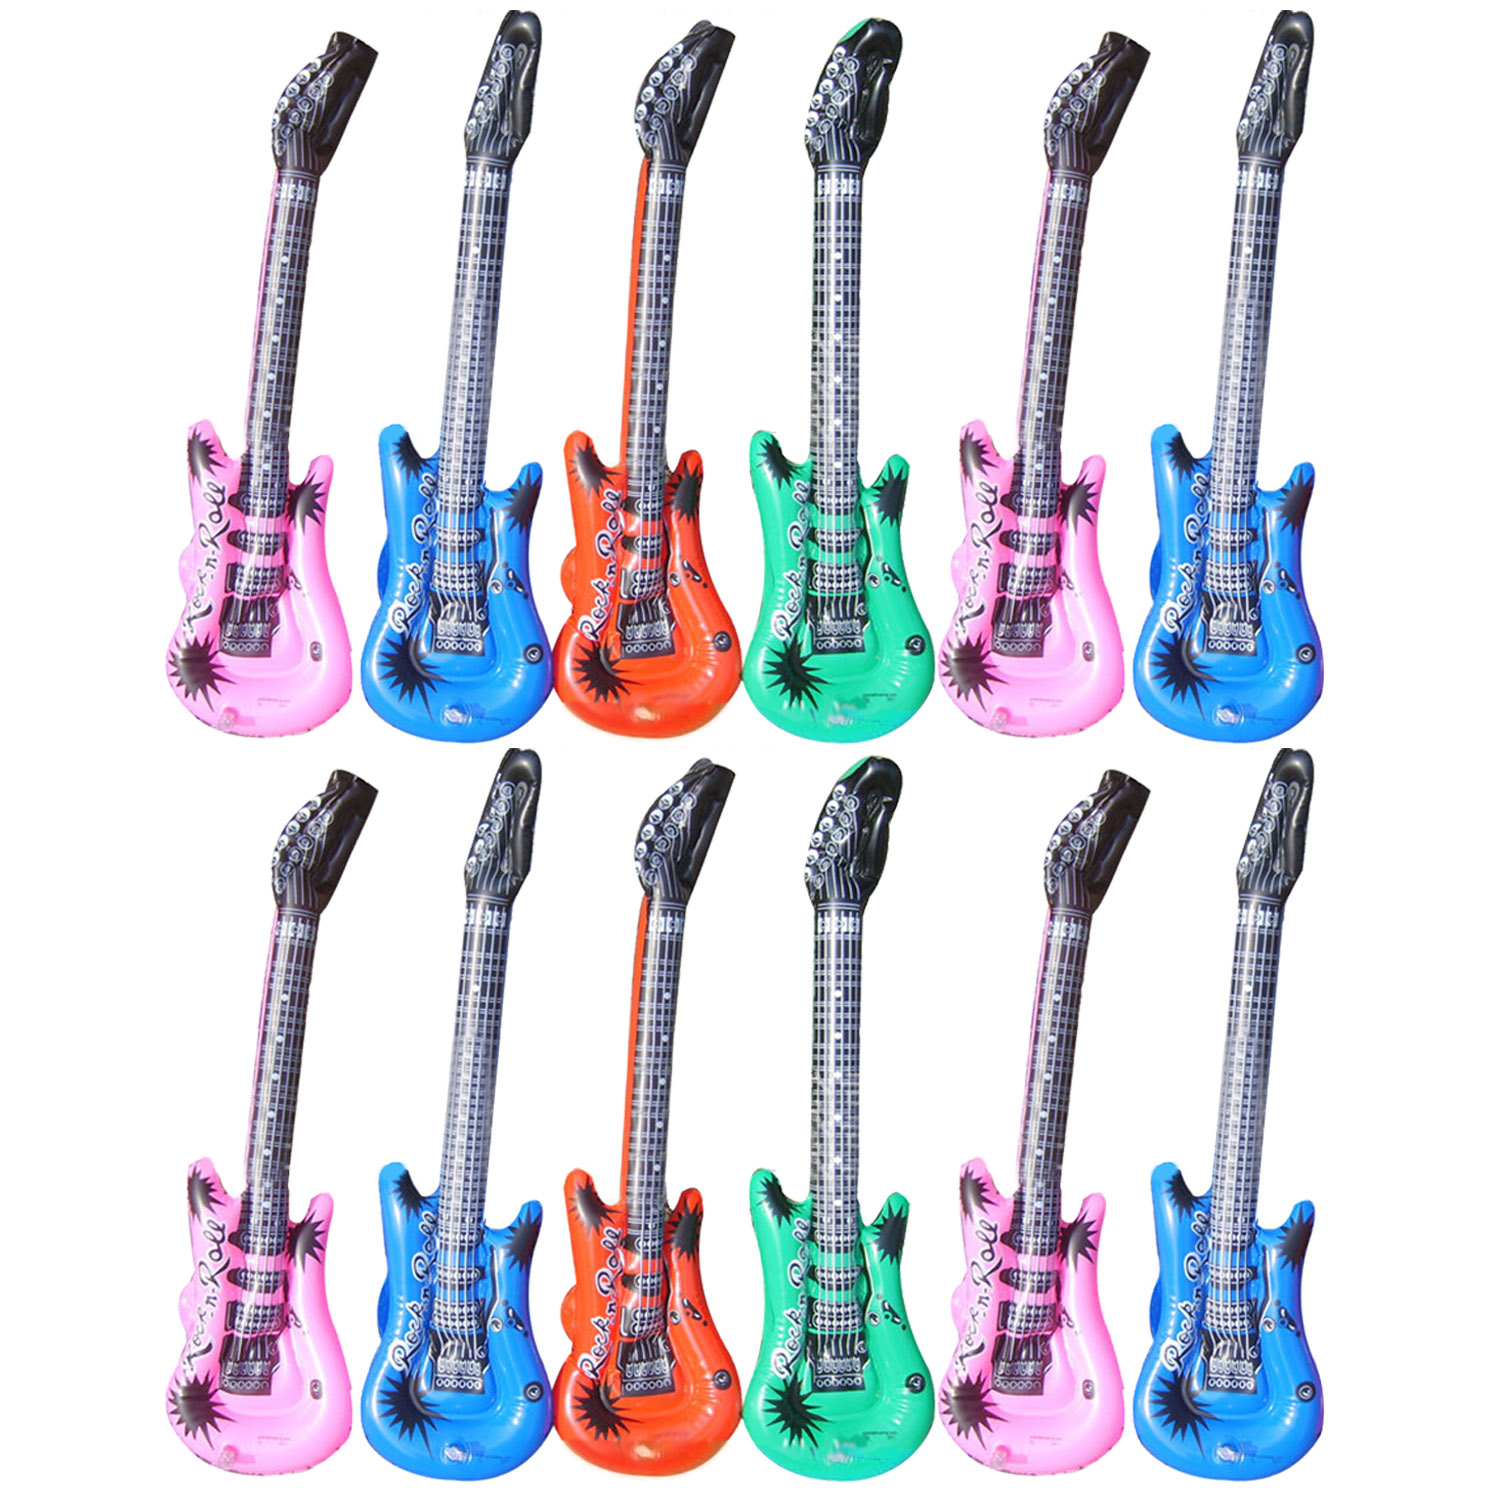 Bevigac 12Pcs Inflatable Guitar Shape Decorative Accessory for Swimming Pool Party Home Decorations Childrens Day Gift